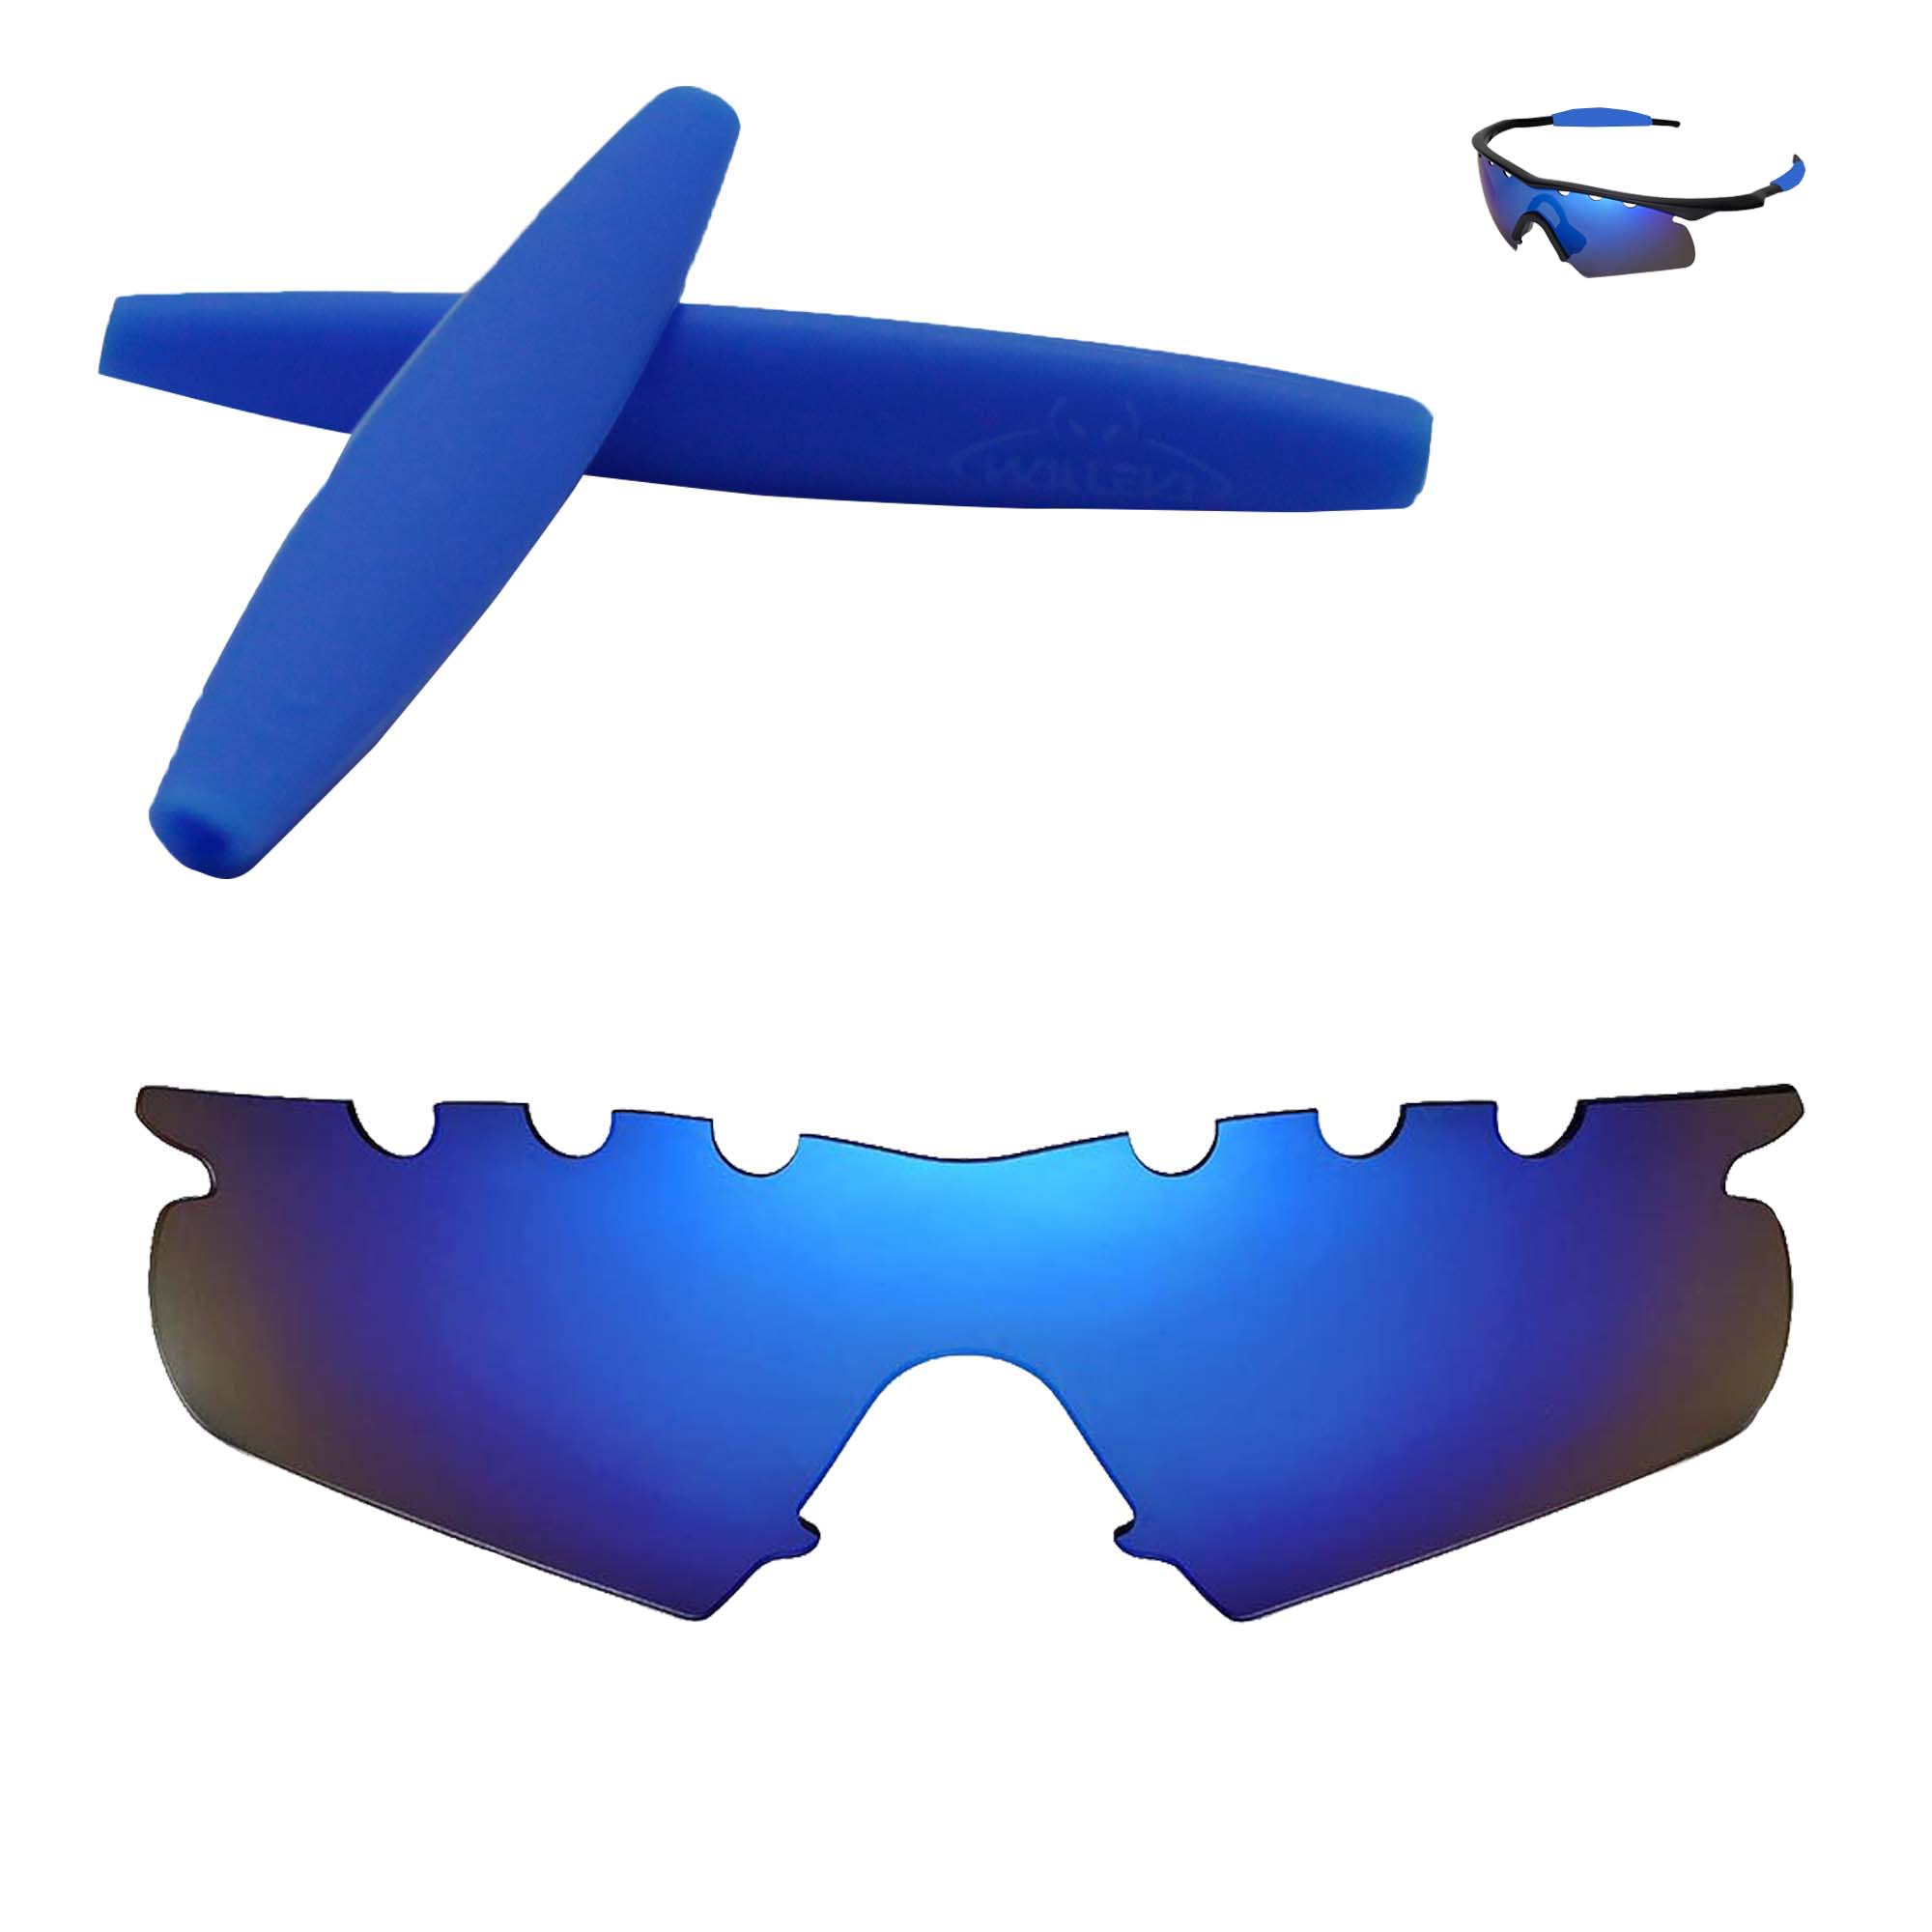 b984e9b9583 Details about Polarized Ice Blue Vented Replacement+Blue Earsocks For  Oakley M Frame Hybrid